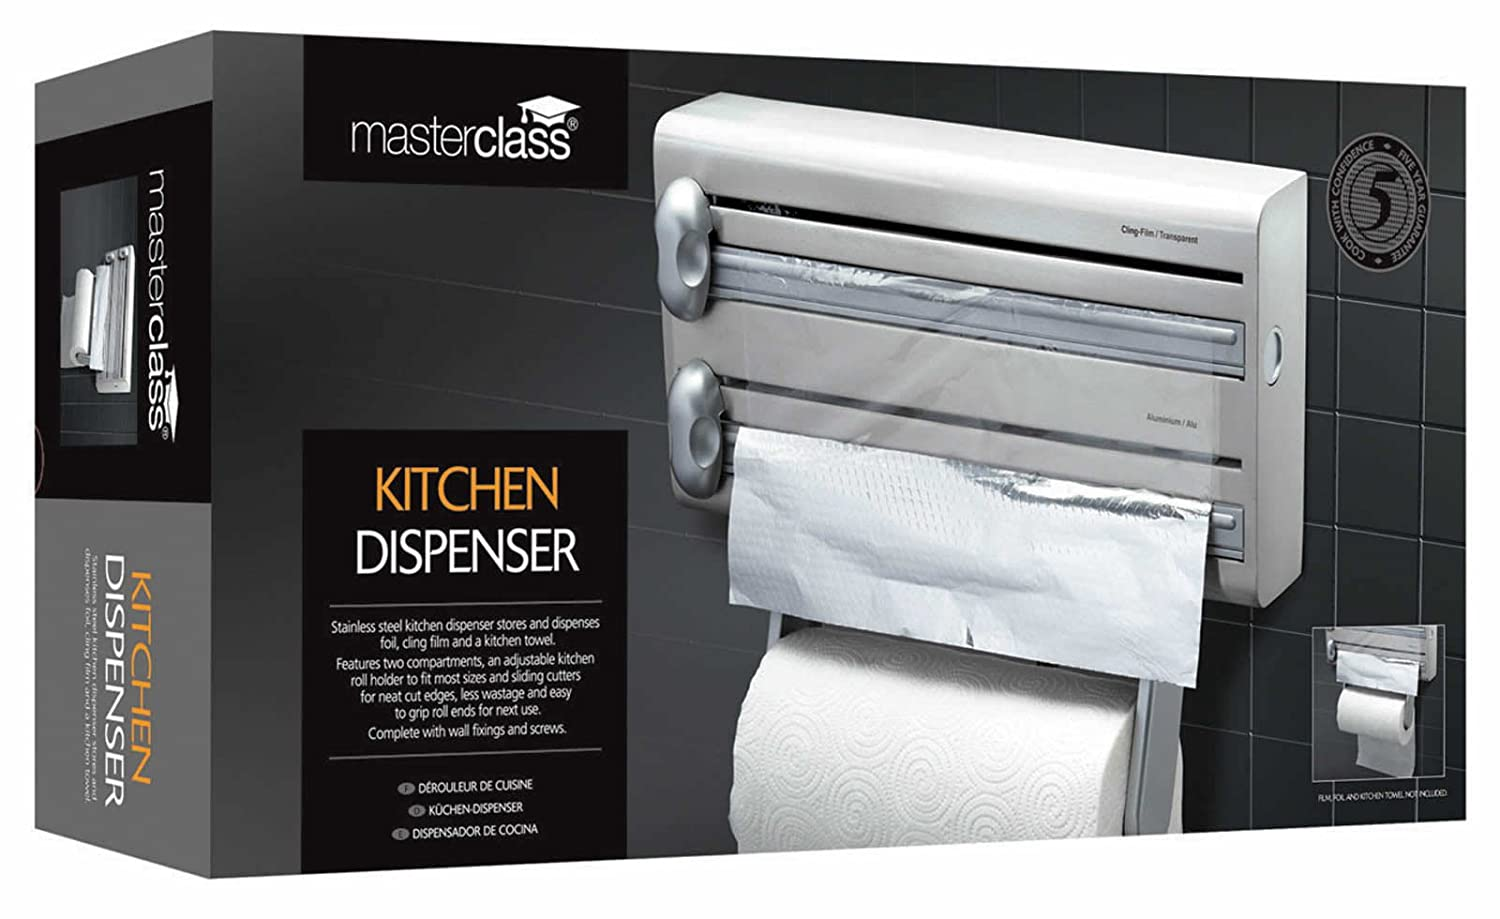 Amazon.com: Master Class Stainless Steel Cling Film, Foil And Kitchen Towel Dispenser: Cookware Accessories: Kitchen & Dining